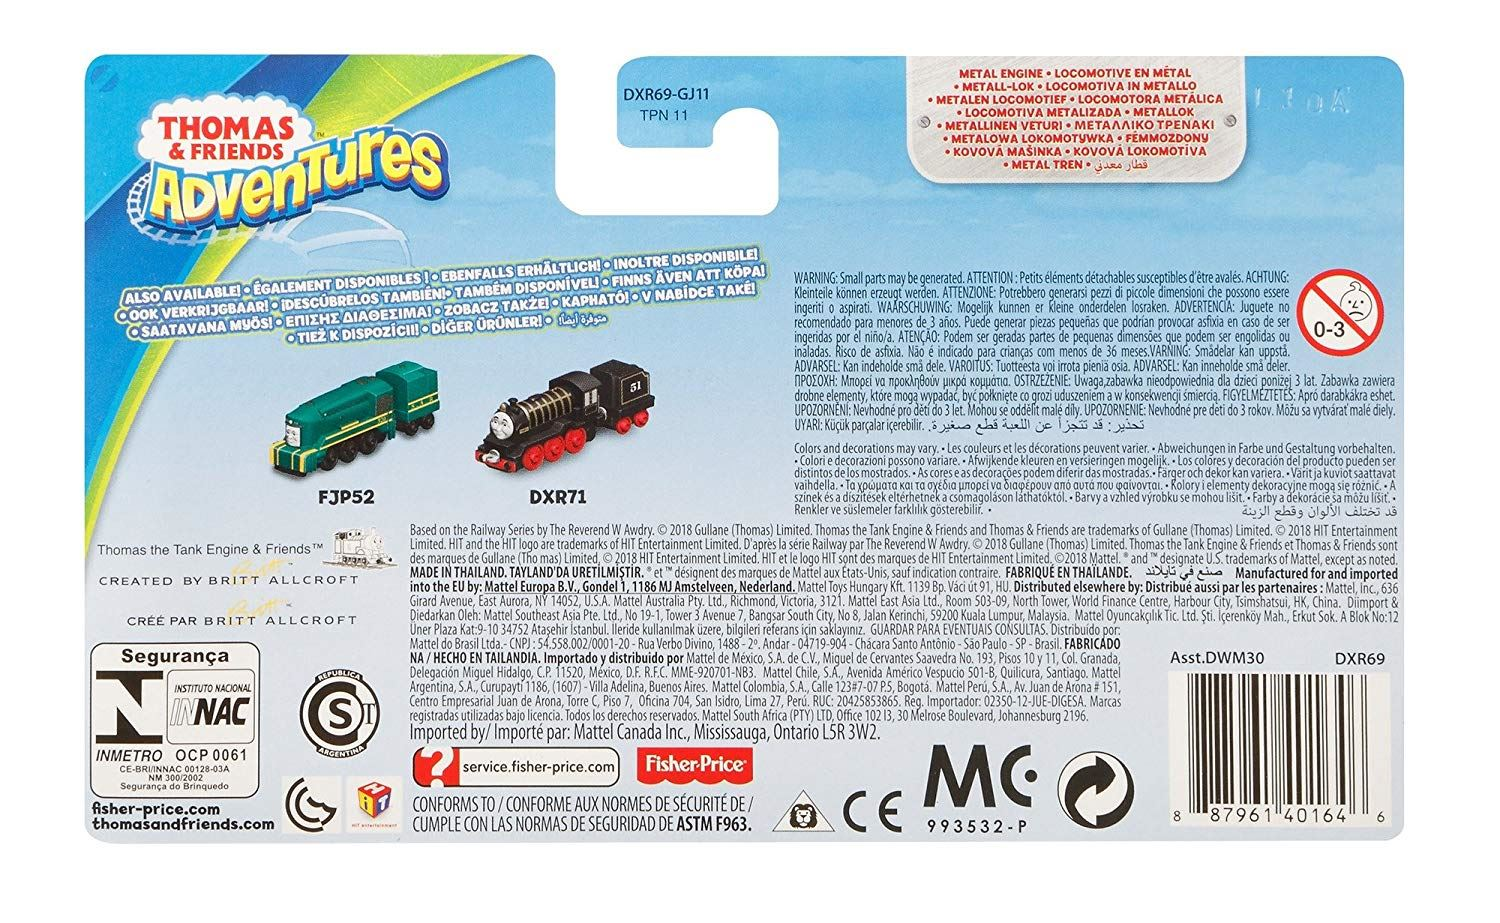 Thomas-amp-Friends-Adventures-Ferdinand-lexi-Shane-Dash-Huge-Bill-Trains Indexbild 45